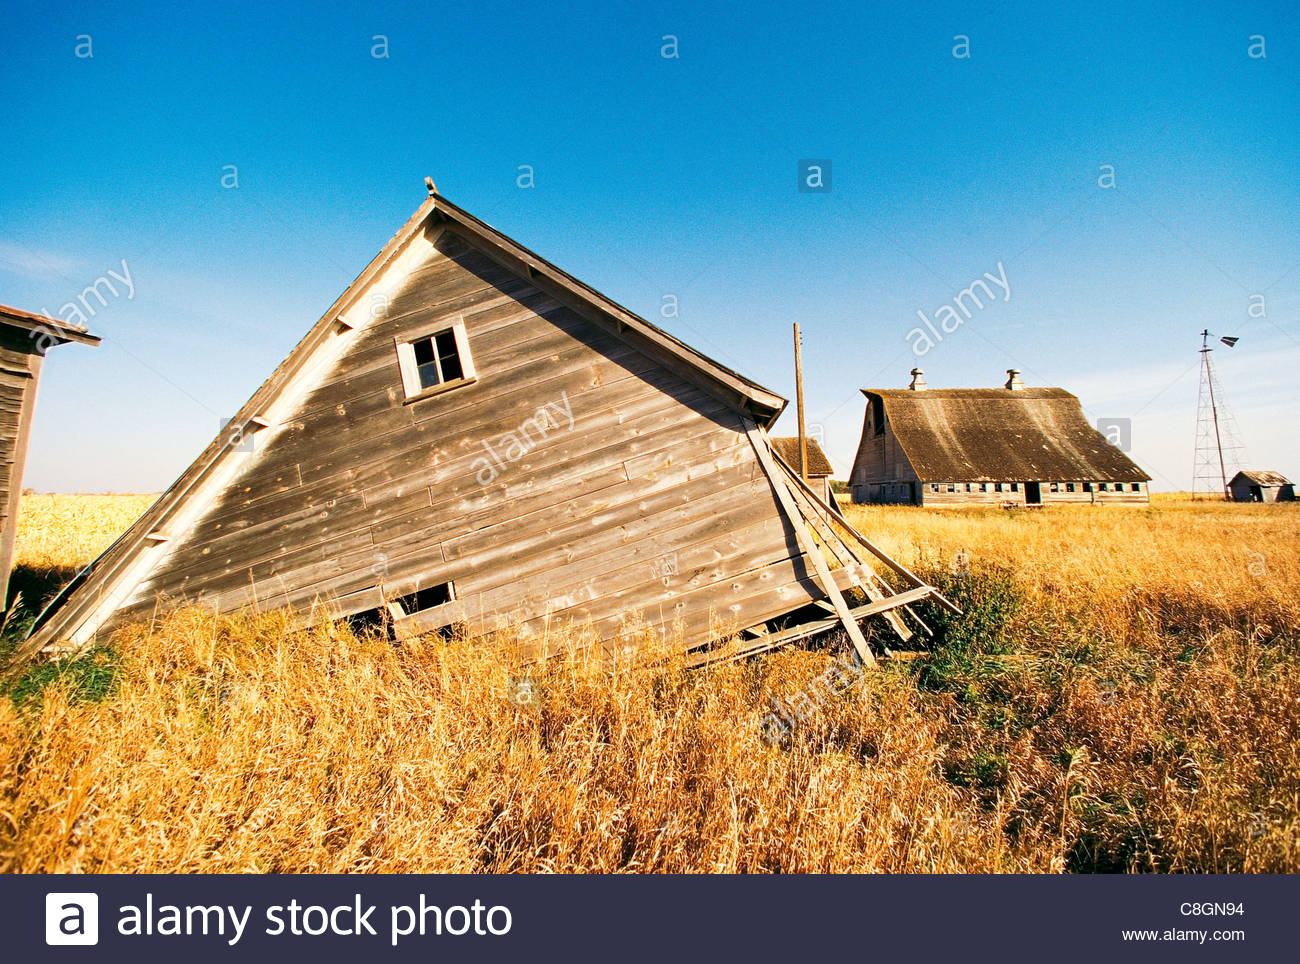 An abandon farm slowly deteriorates in the middle of a wheat field. - Stock Image